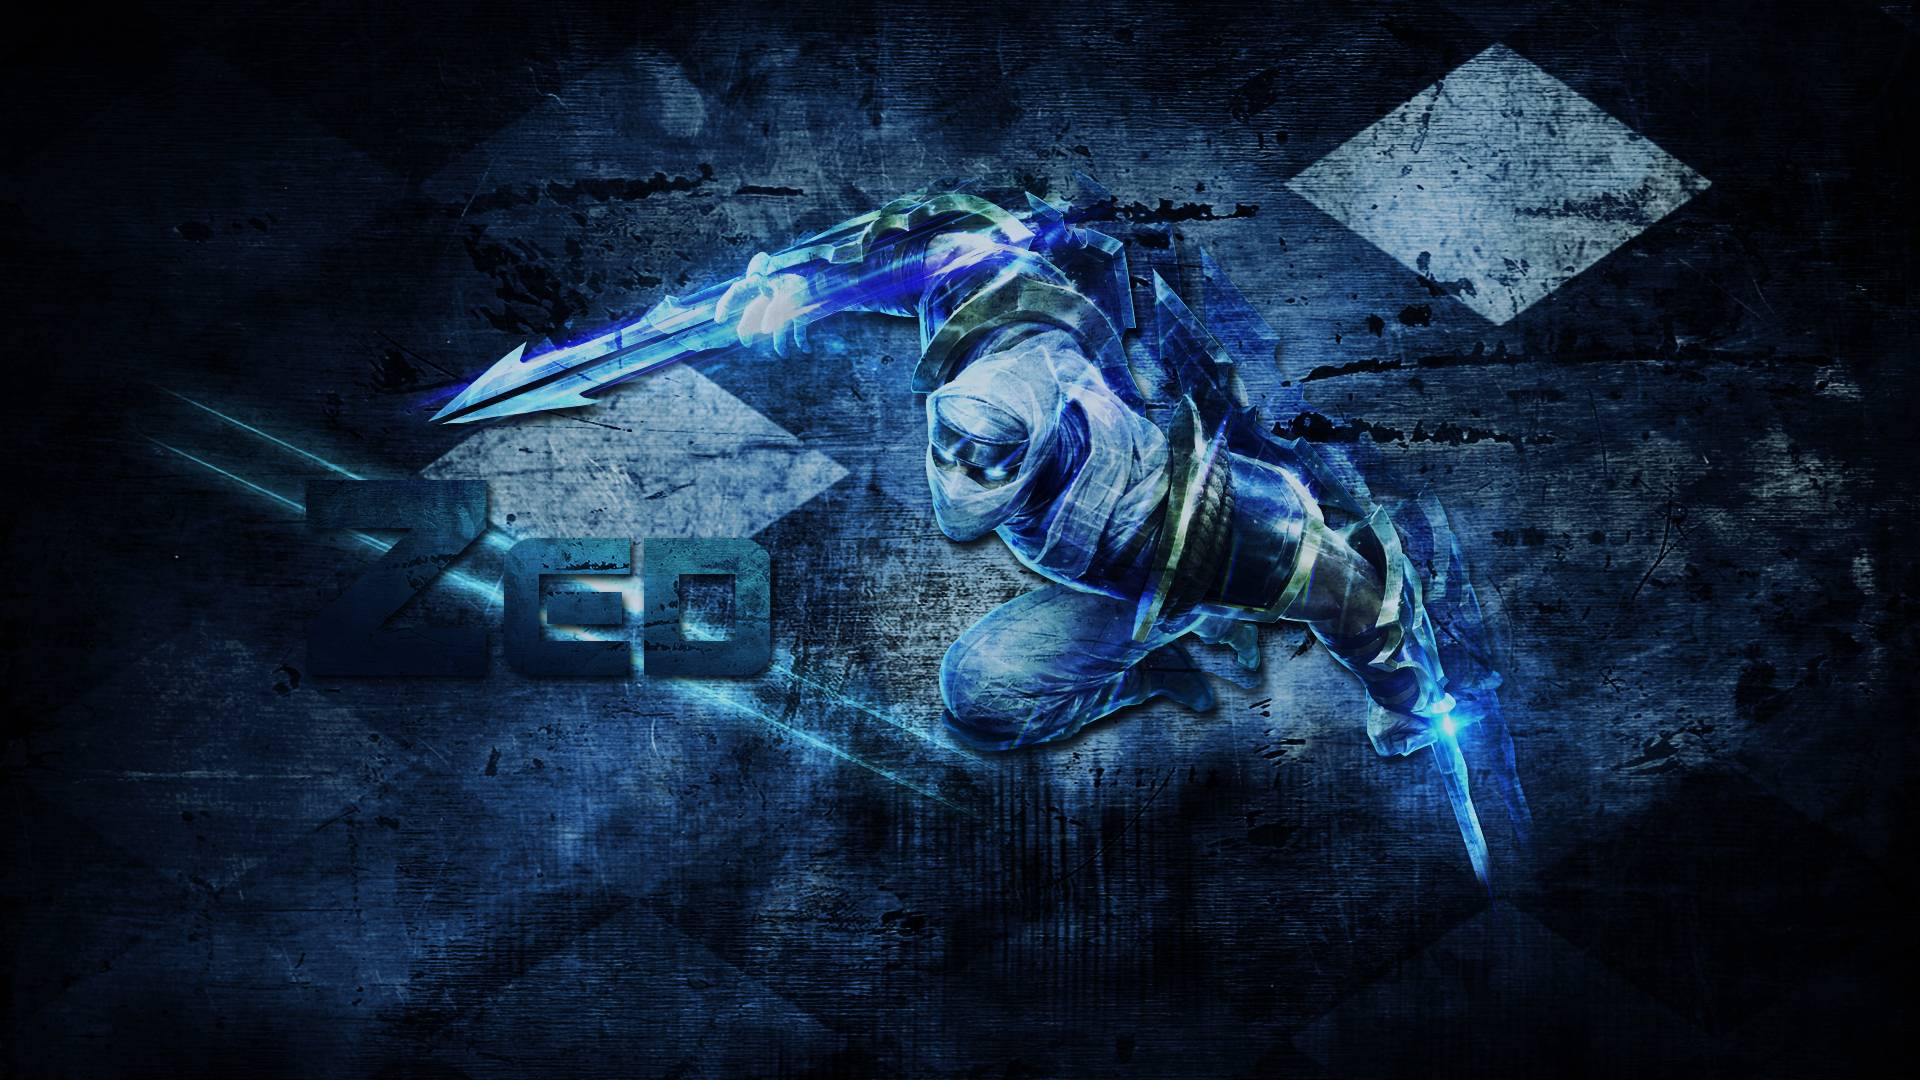 League Of Legends Shockblade Zed Wallpapers 1080p Is Cool Wallpapers